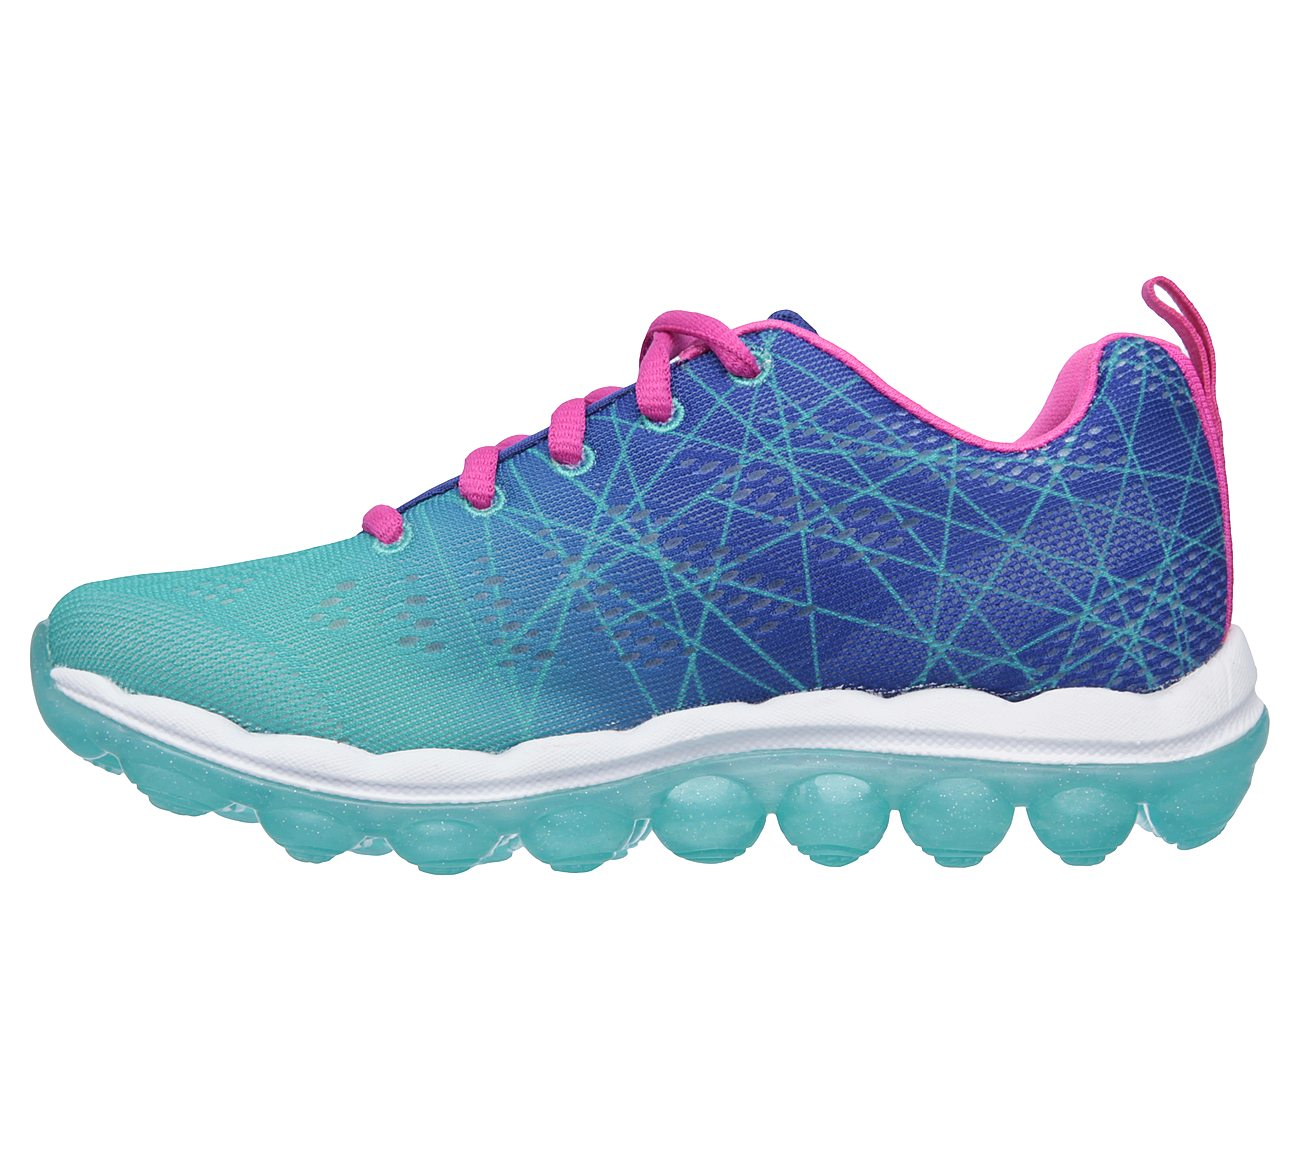 Skechers Shoes  Skechers Skech Air Laser Lite Girls Sports Shoes BlueAqua